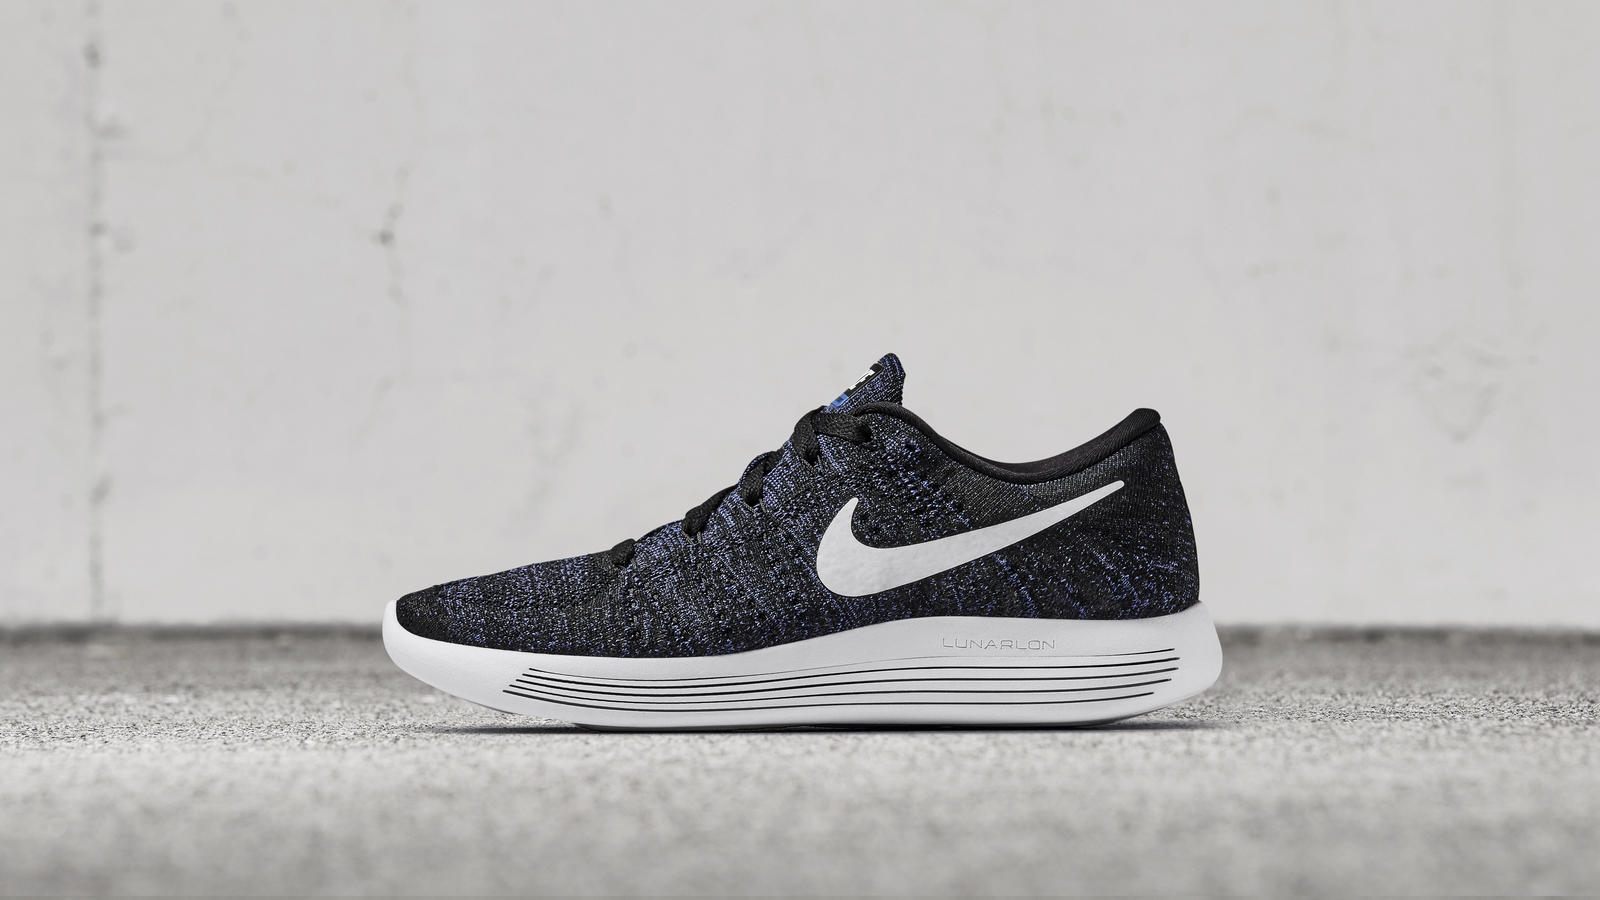 watch 429c0 09ed6 The Nike Lunarepic Low Flyknit Releases Tomorrow - WearTesters